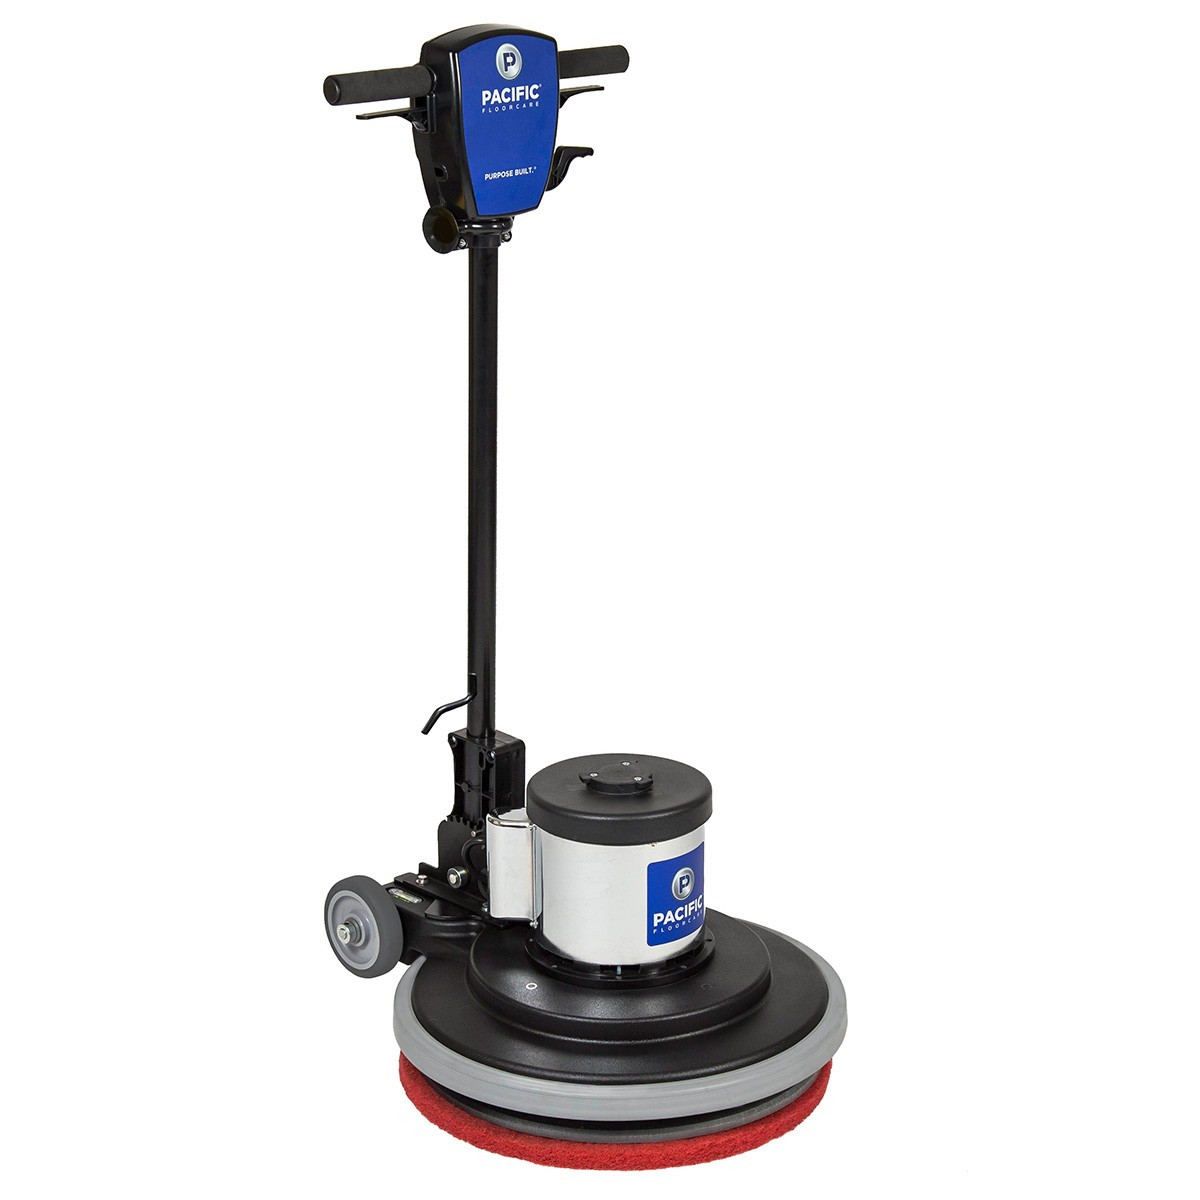 Pacific Floorcare 174 20 Quot Floor Buffer Model Fm 20hd 1 5 Hp